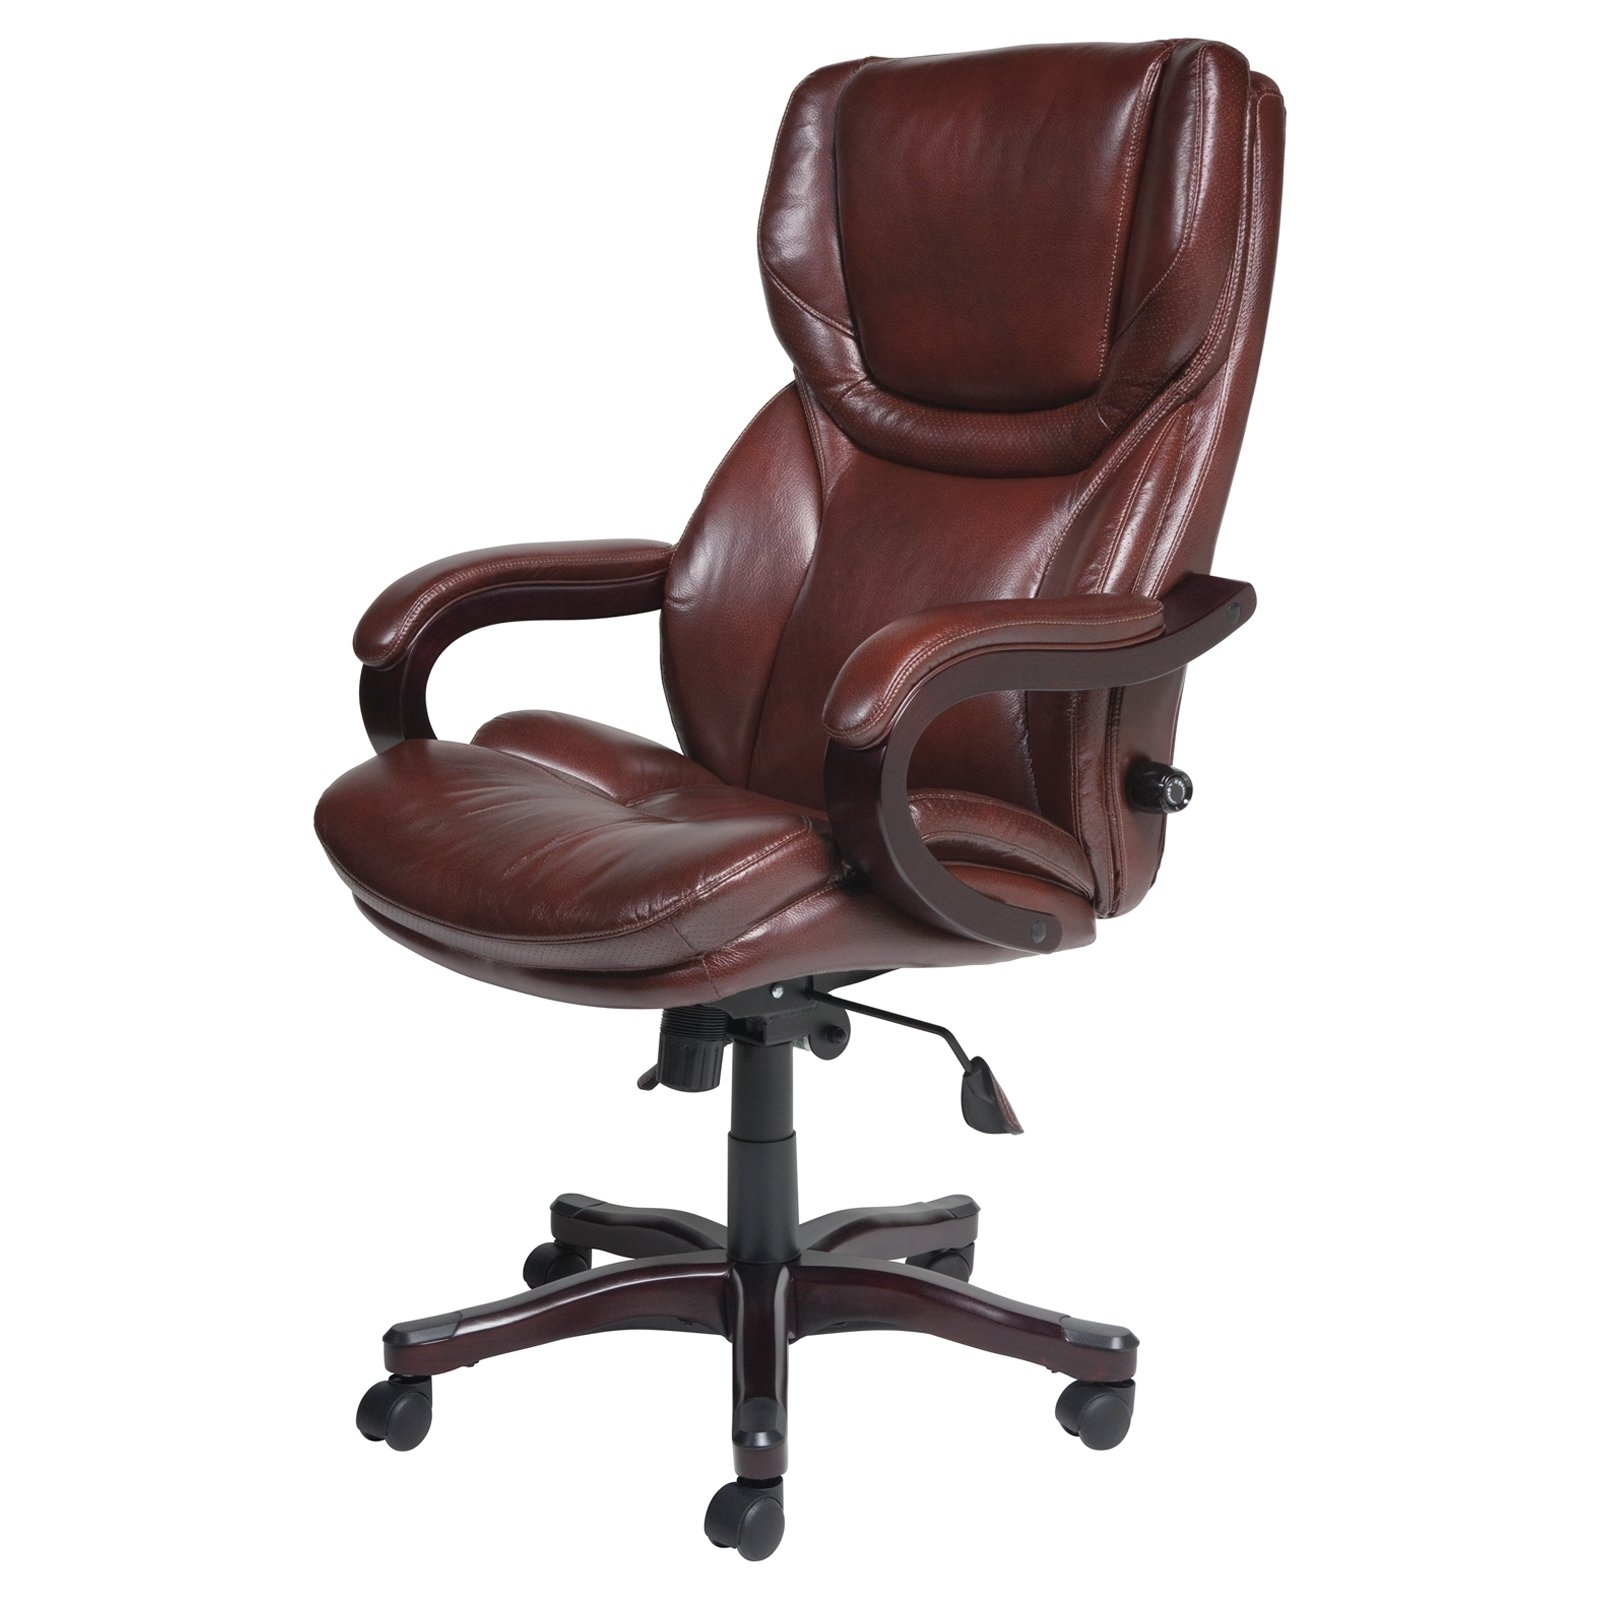 Leather Wood Executive Office Chairs Within Popular Chair : Ergonomic Black Leather Executive Office Chair Verona (View 10 of 20)